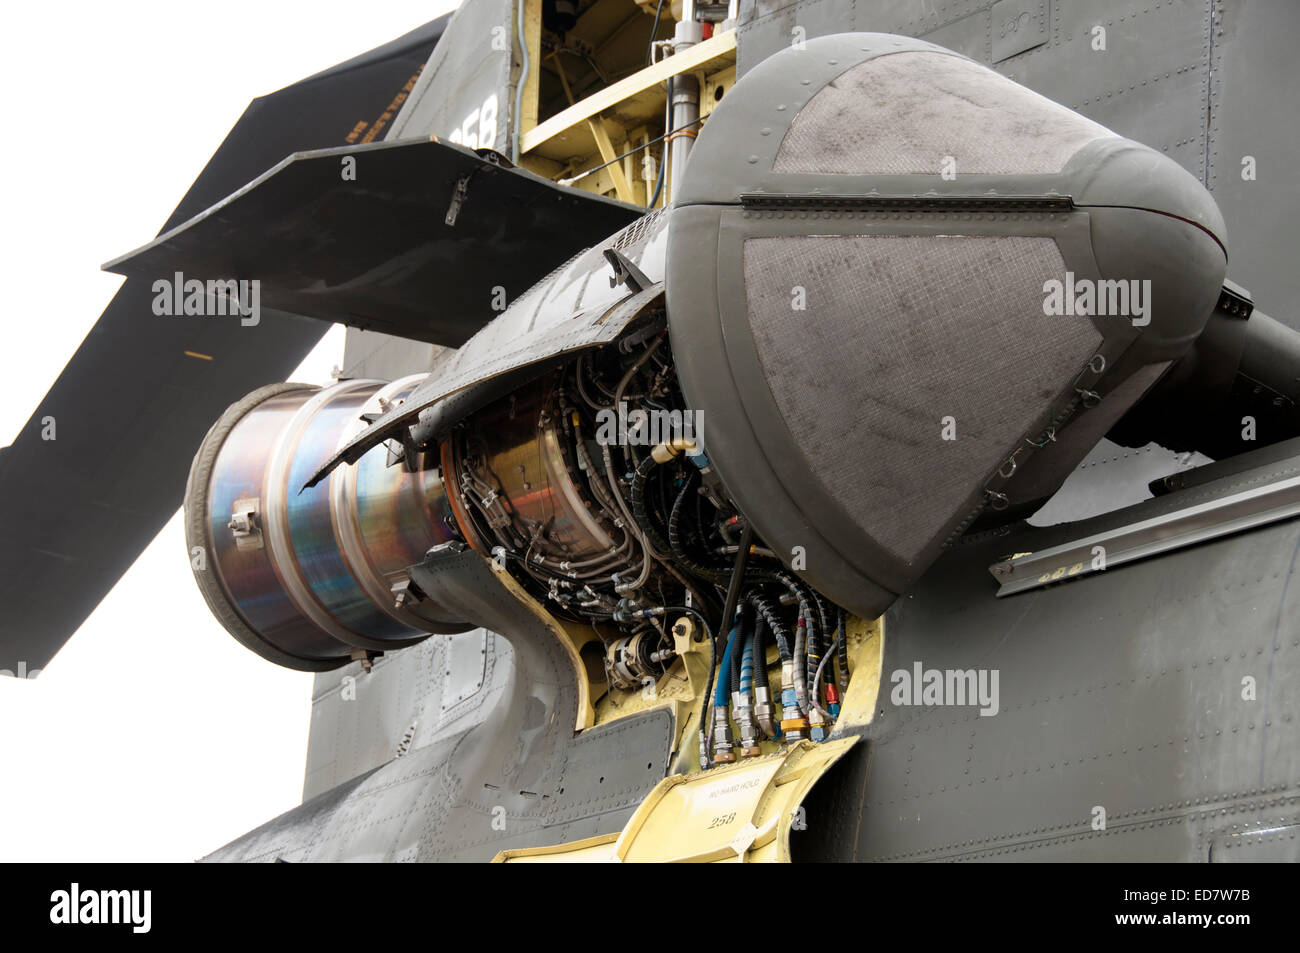 Exposed jet engine on chinook helicopter stock photo for Jet motors mini for sale